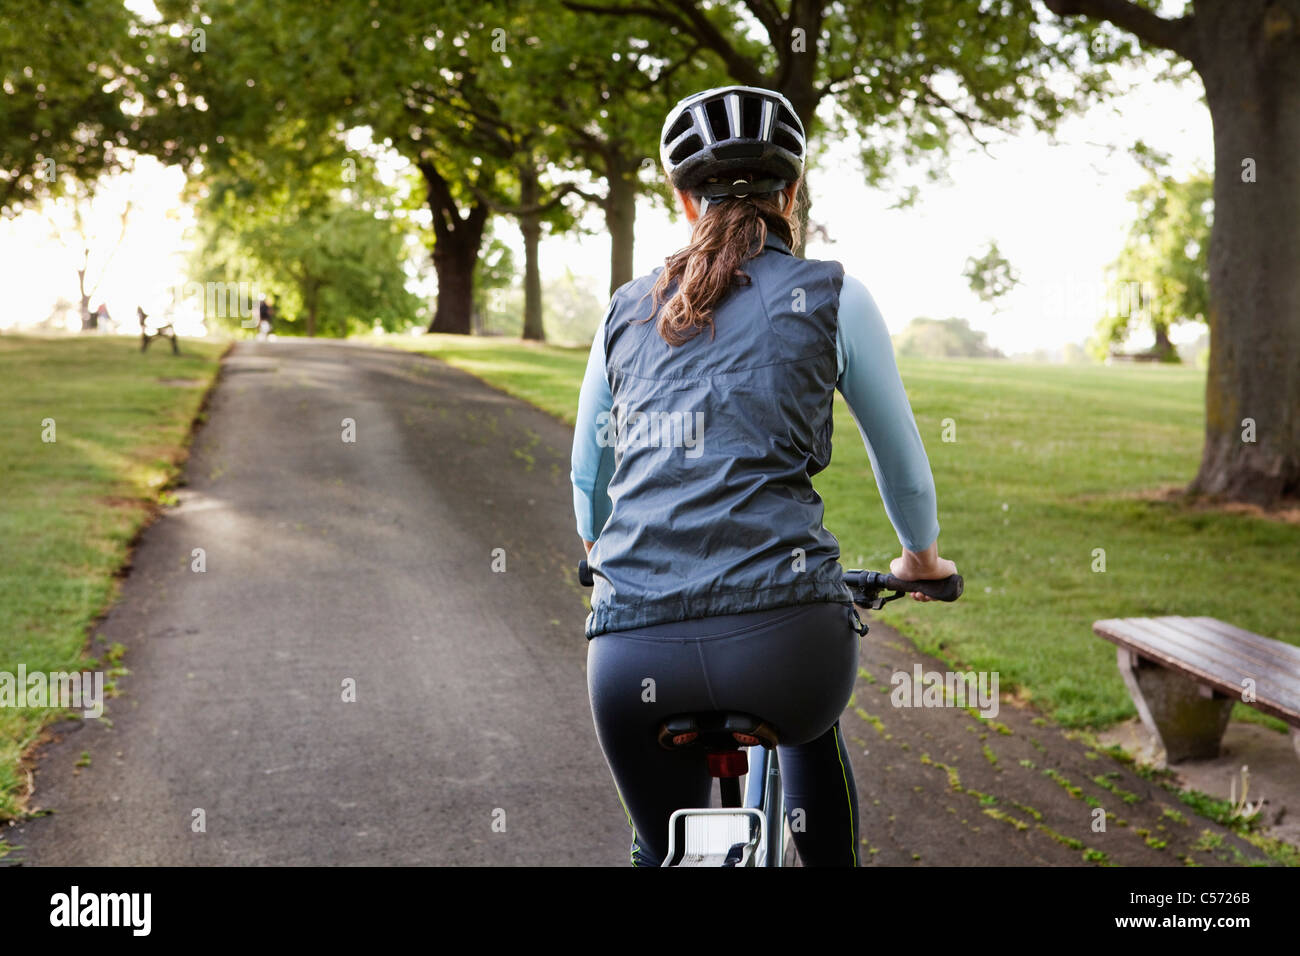 Woman cycling uphill at park - Stock Image